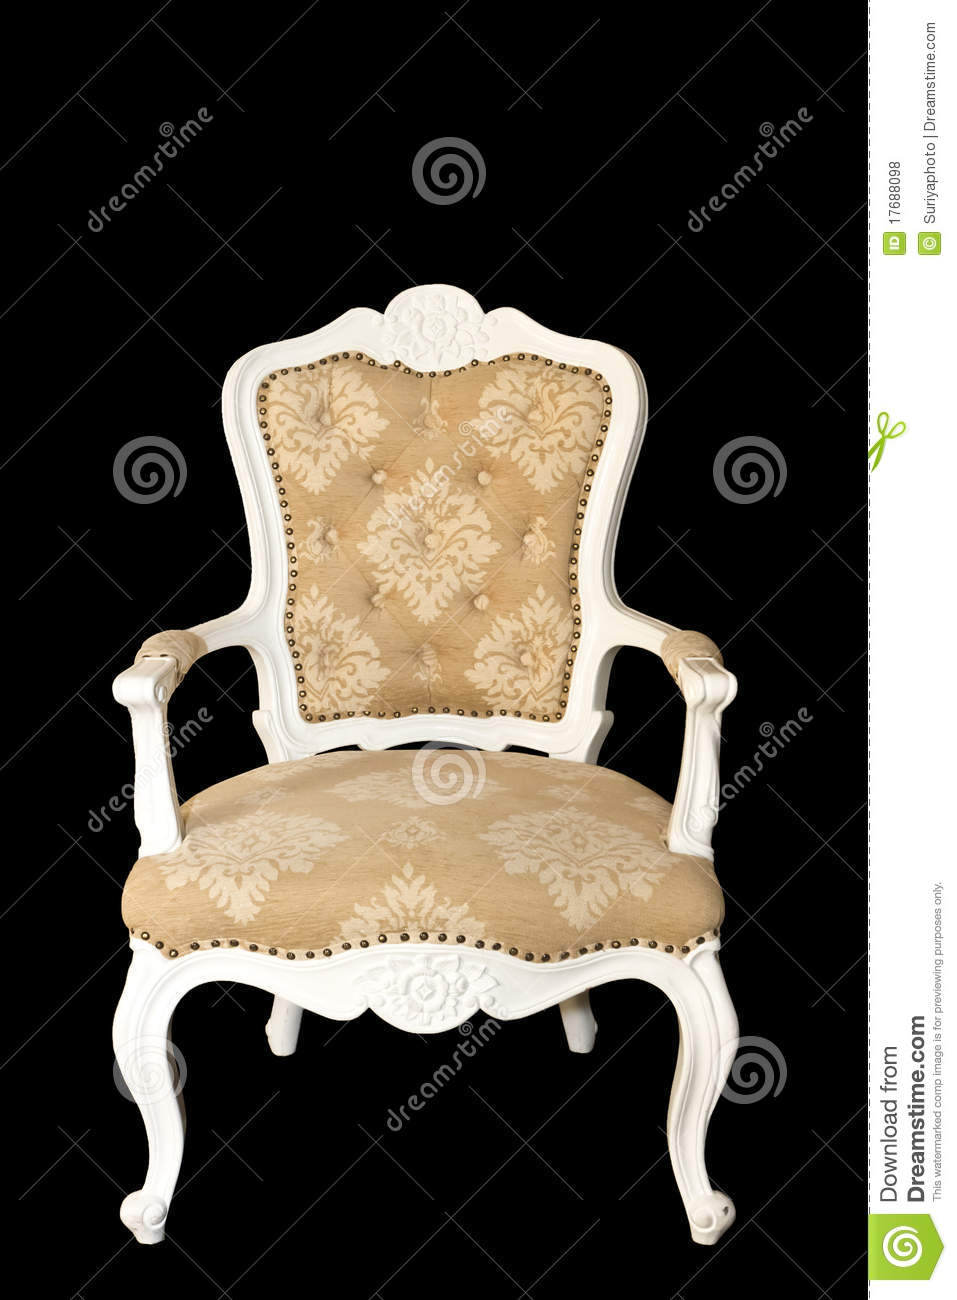 Luxury Arm Chair On Black Background Royalty Free Stock